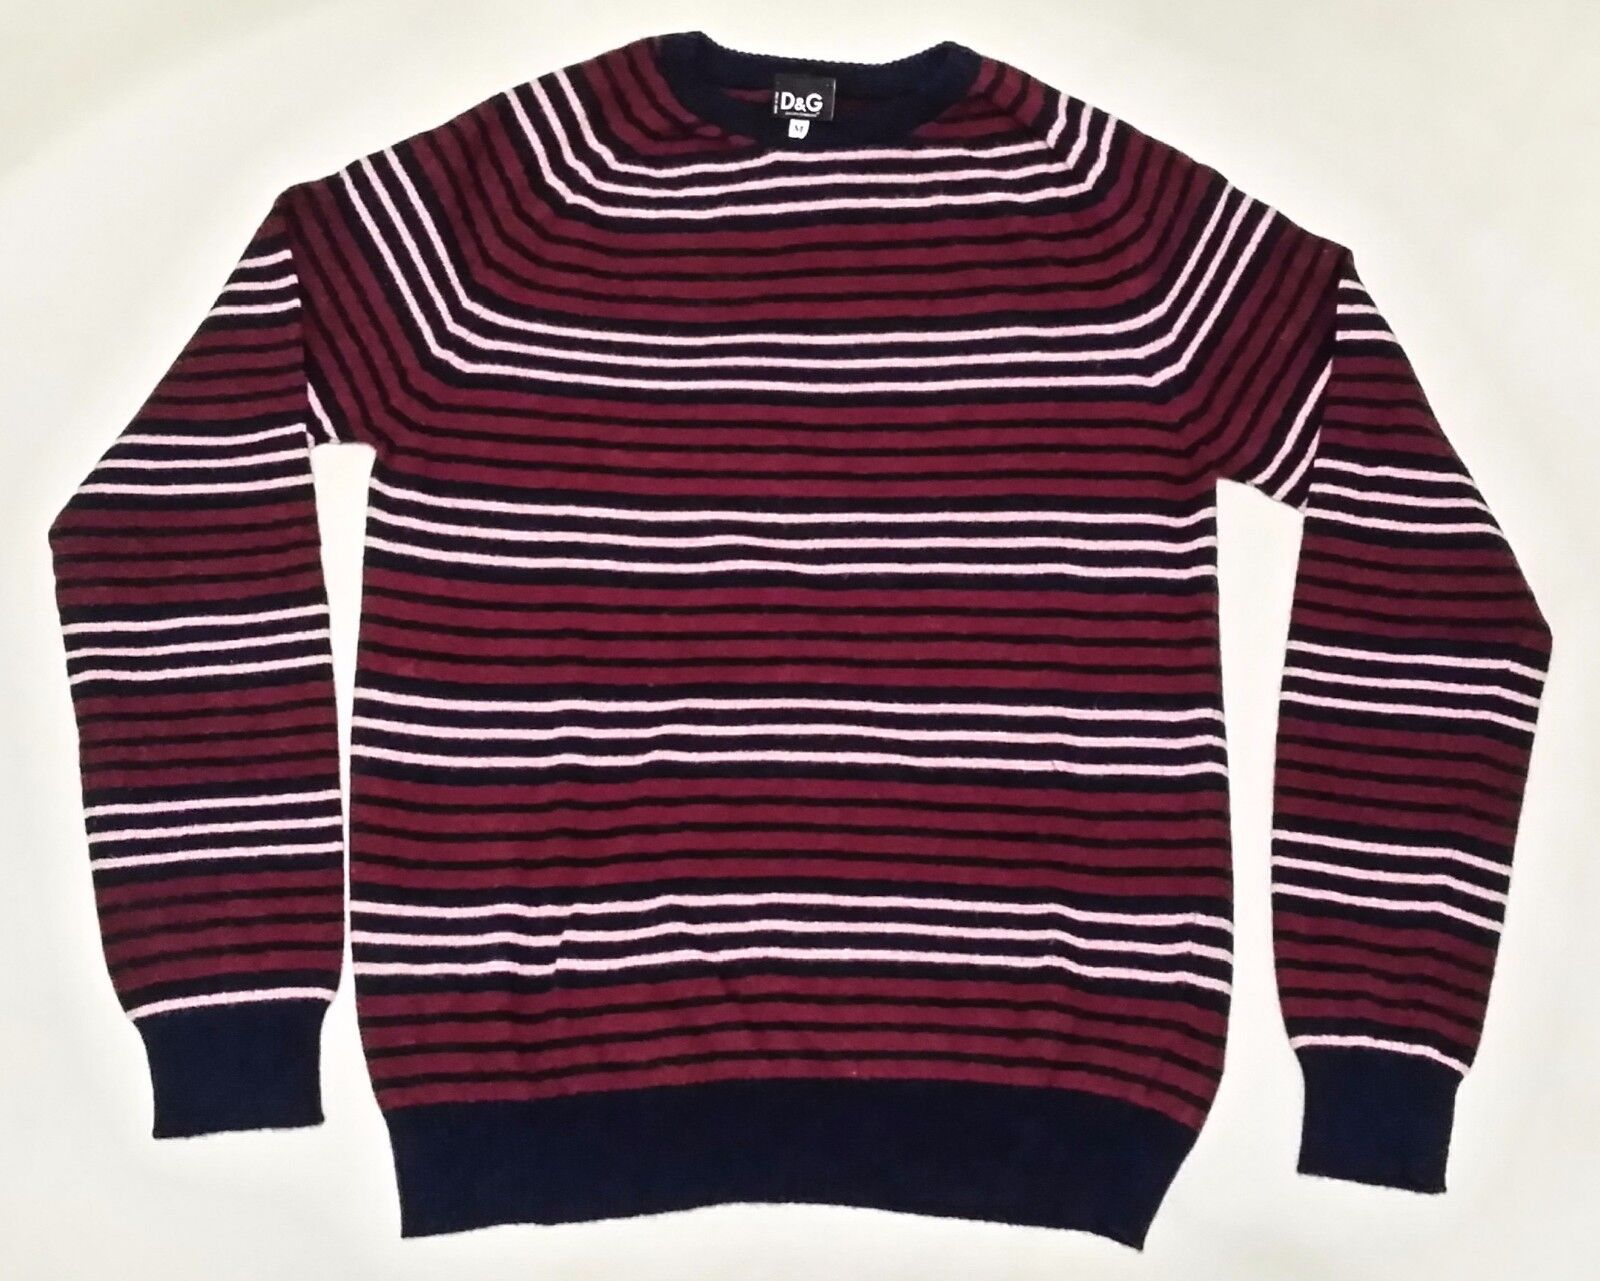 Genuine D&G Men Jumper size M (chest 38) Made In